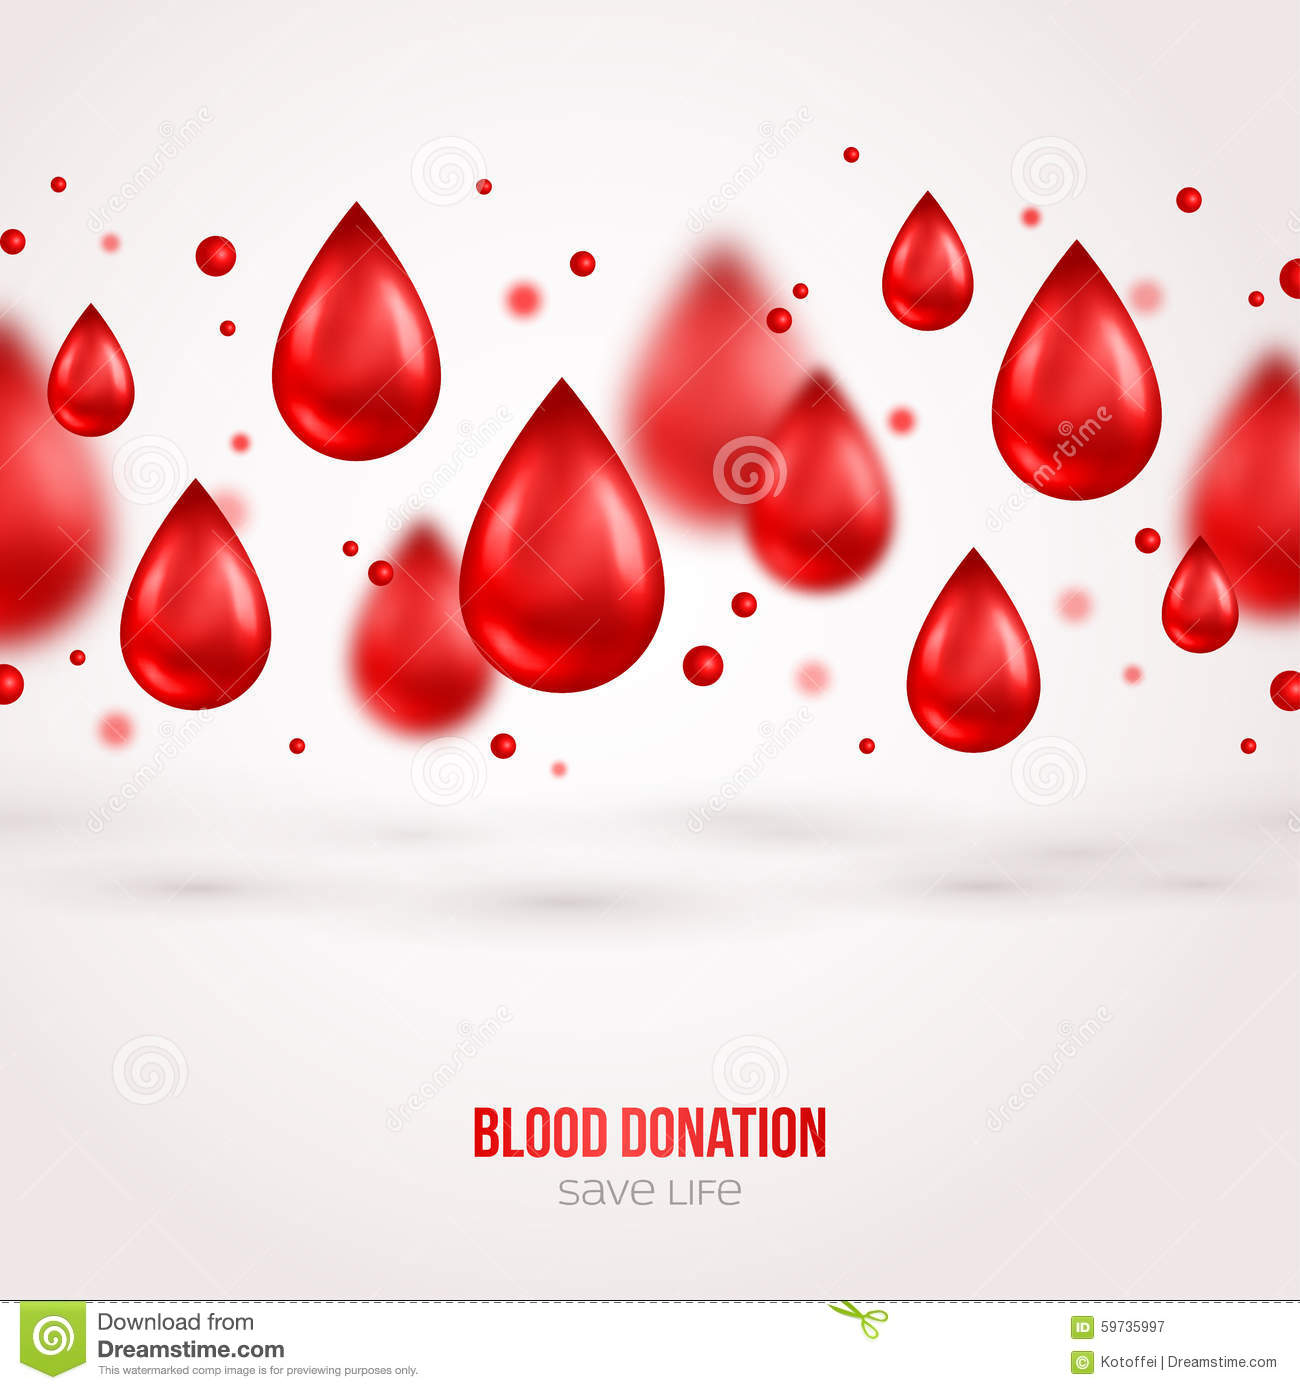 Poster design on blood donation - Donor Poster Or Flyer Blood Donation Lifesaving Royalty Free Stock Photography